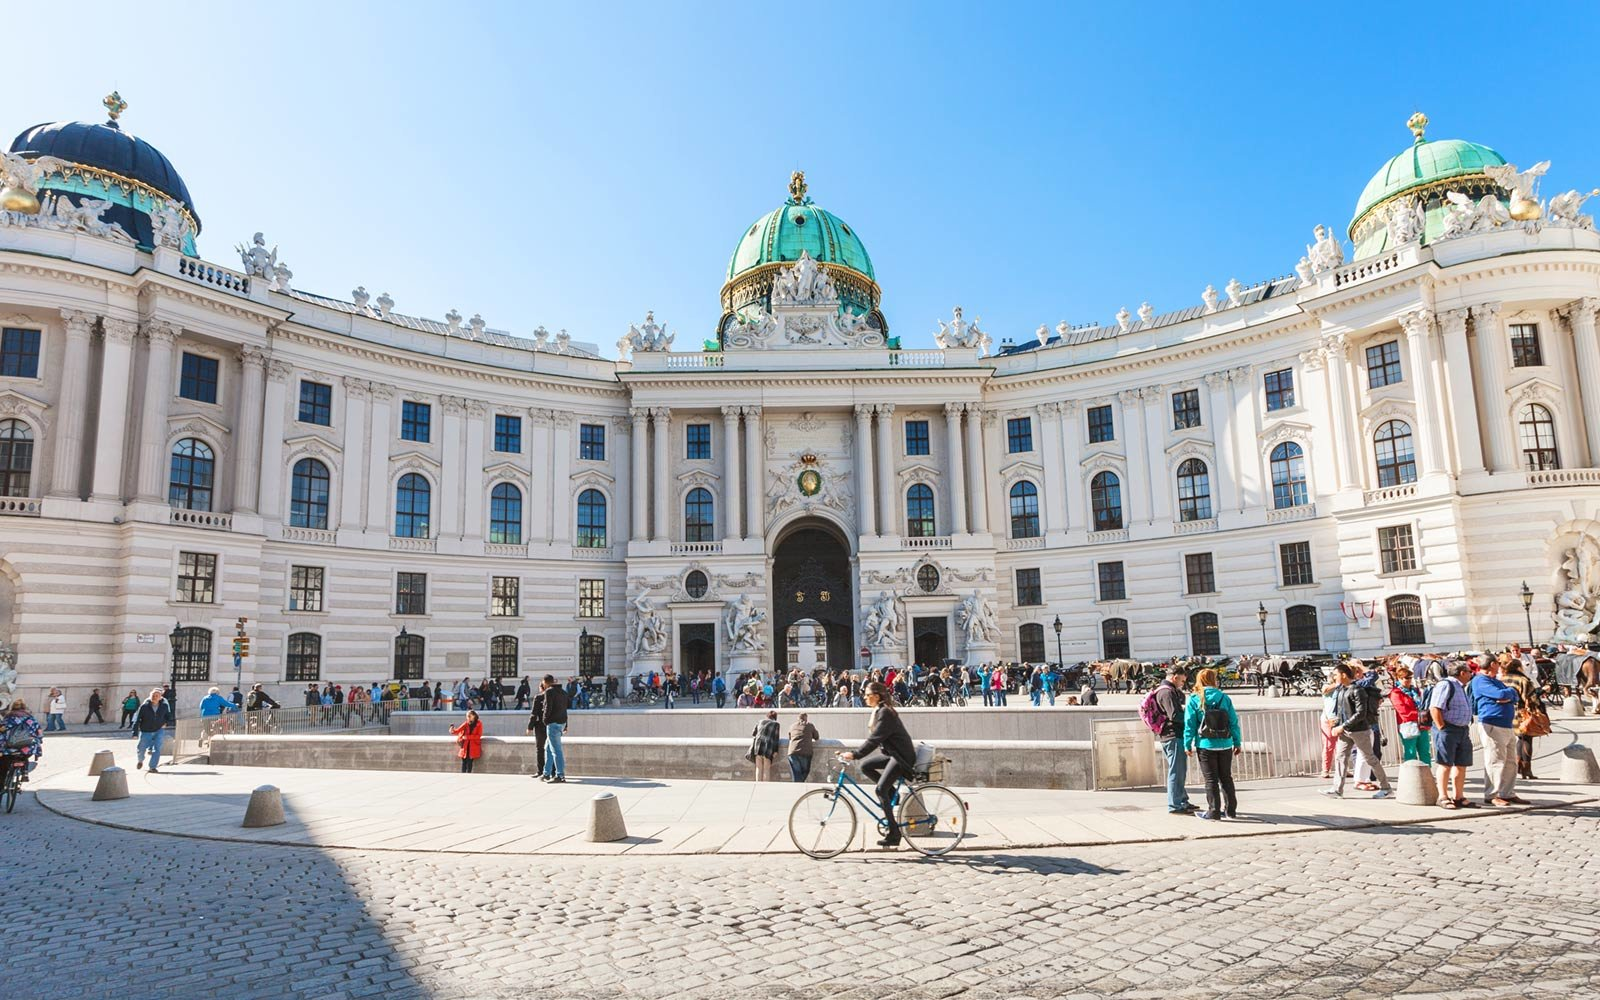 Hofburg Palace, Michaelerplatz Square, Vienna, Austria